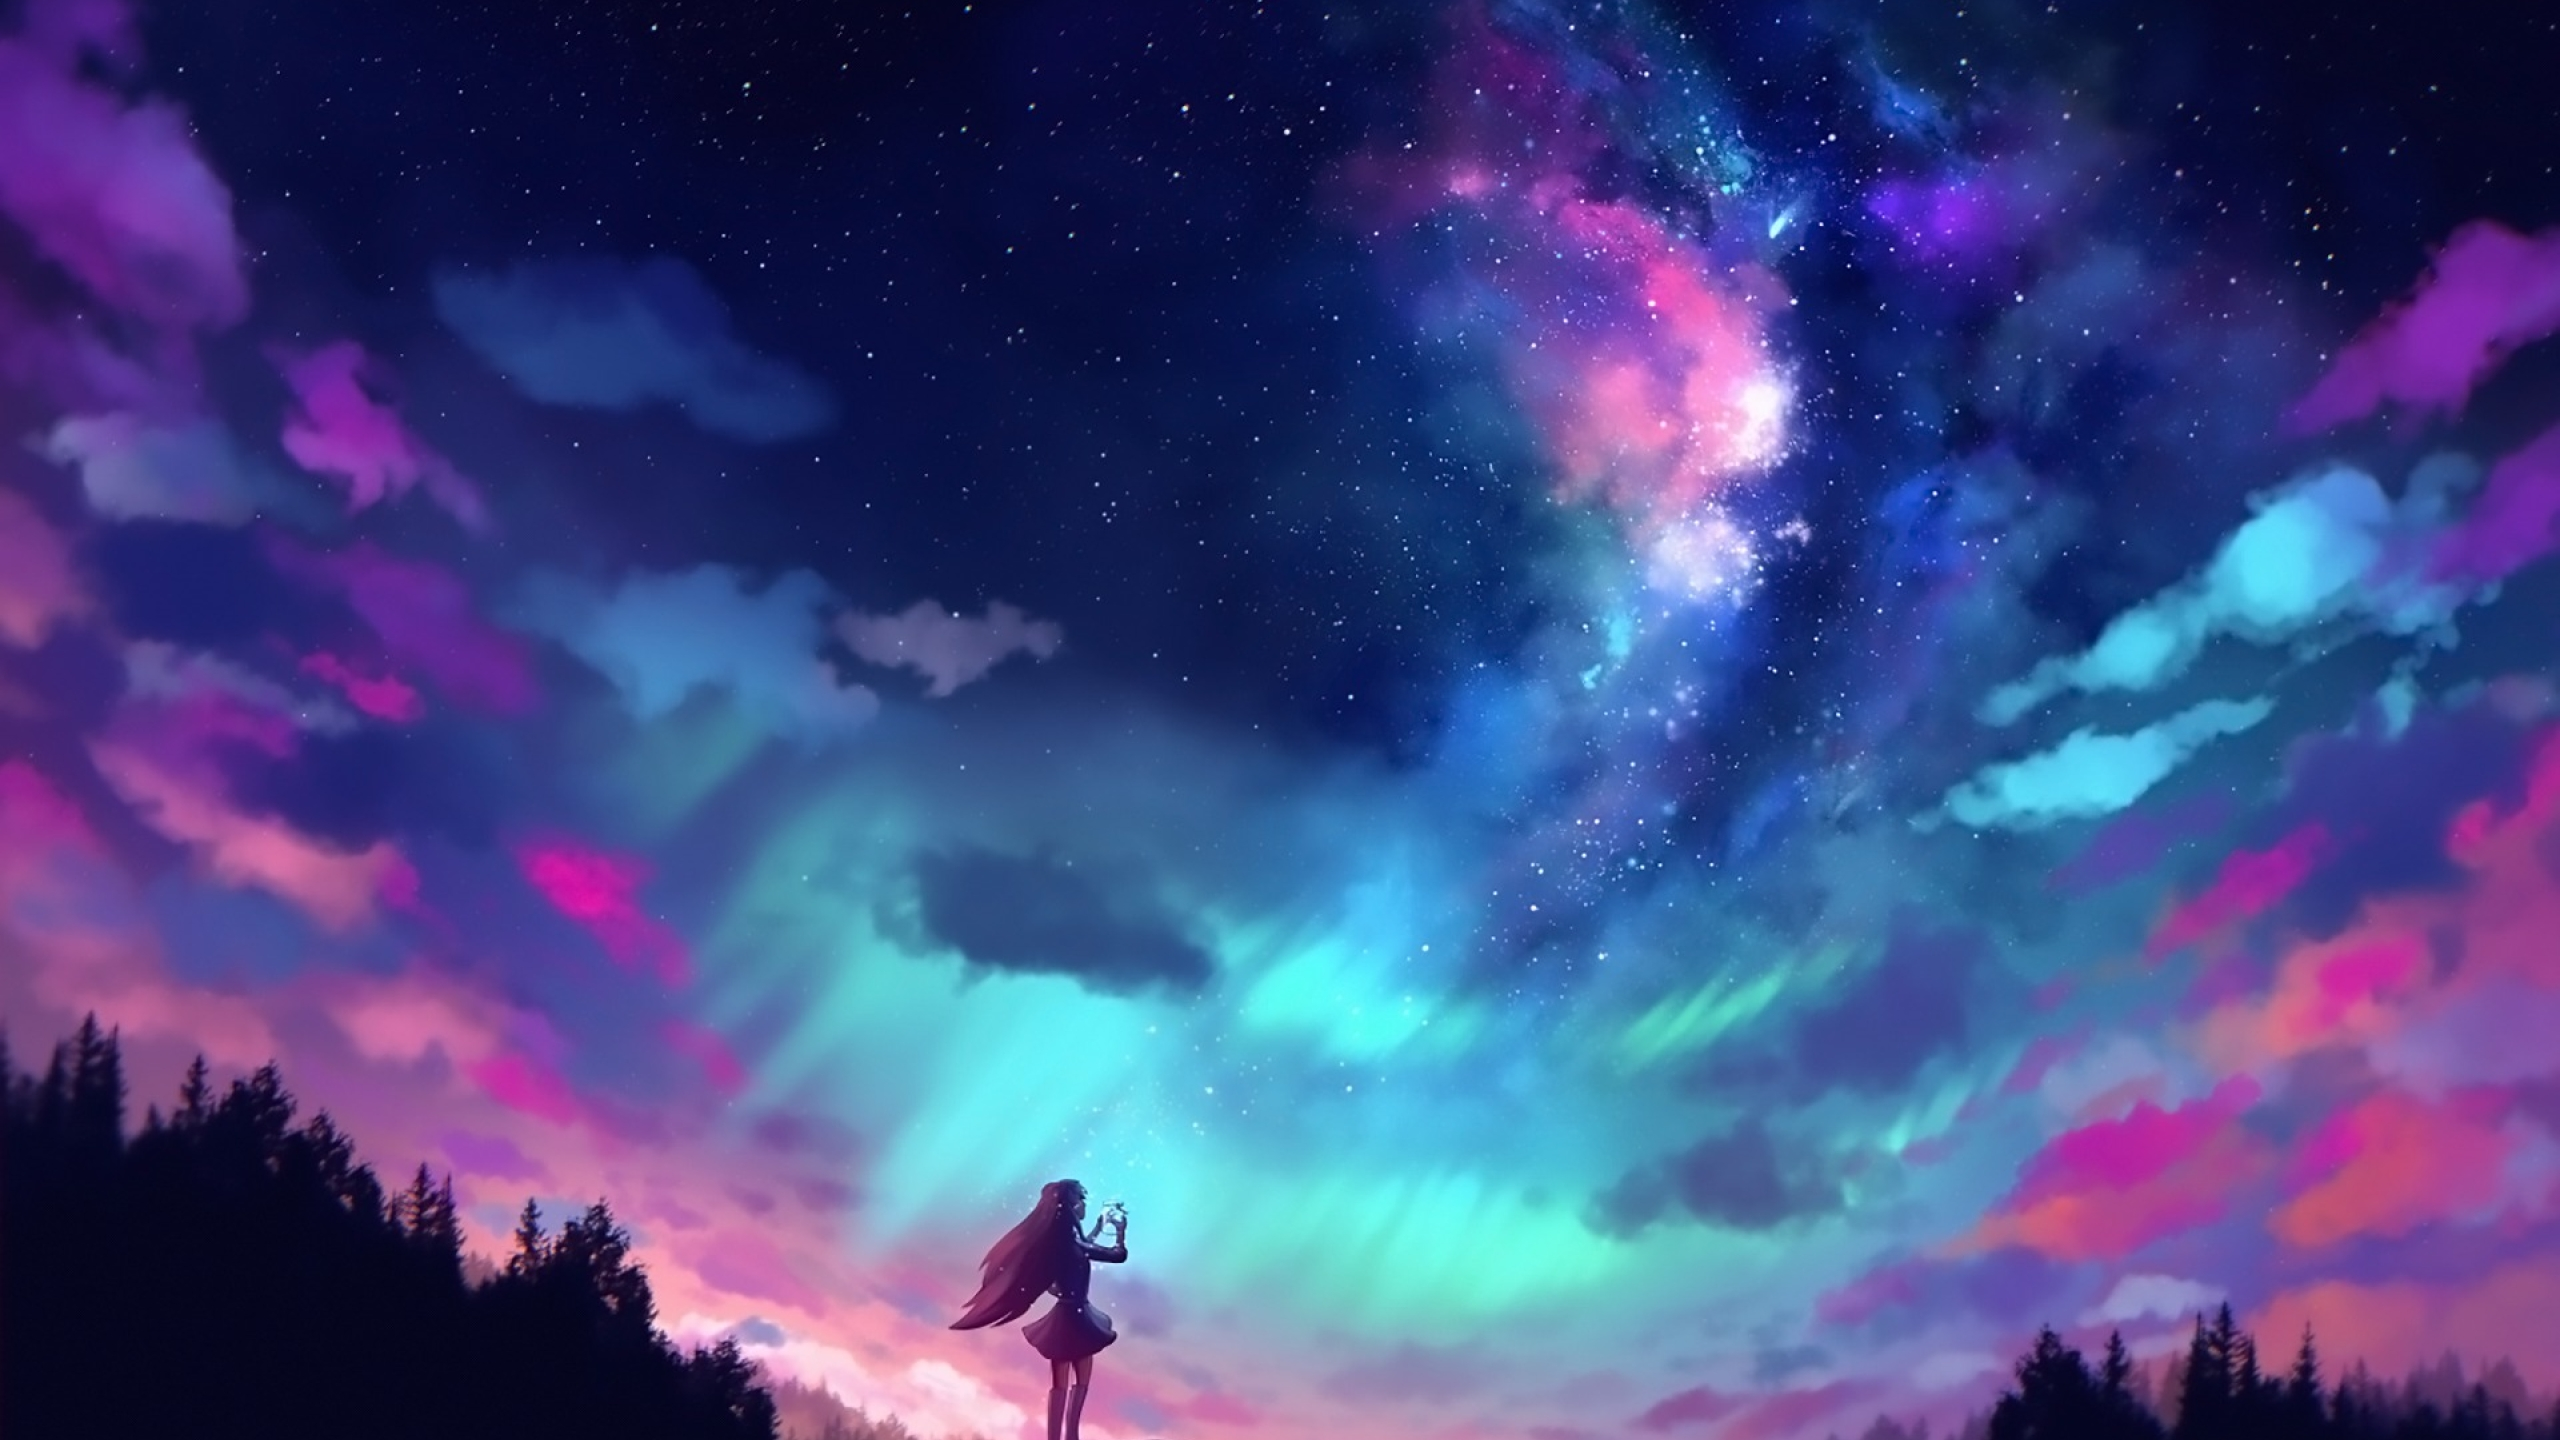 2560x1440 Anime Girl And Colorful Sky 1440p Resolution Wallpaper